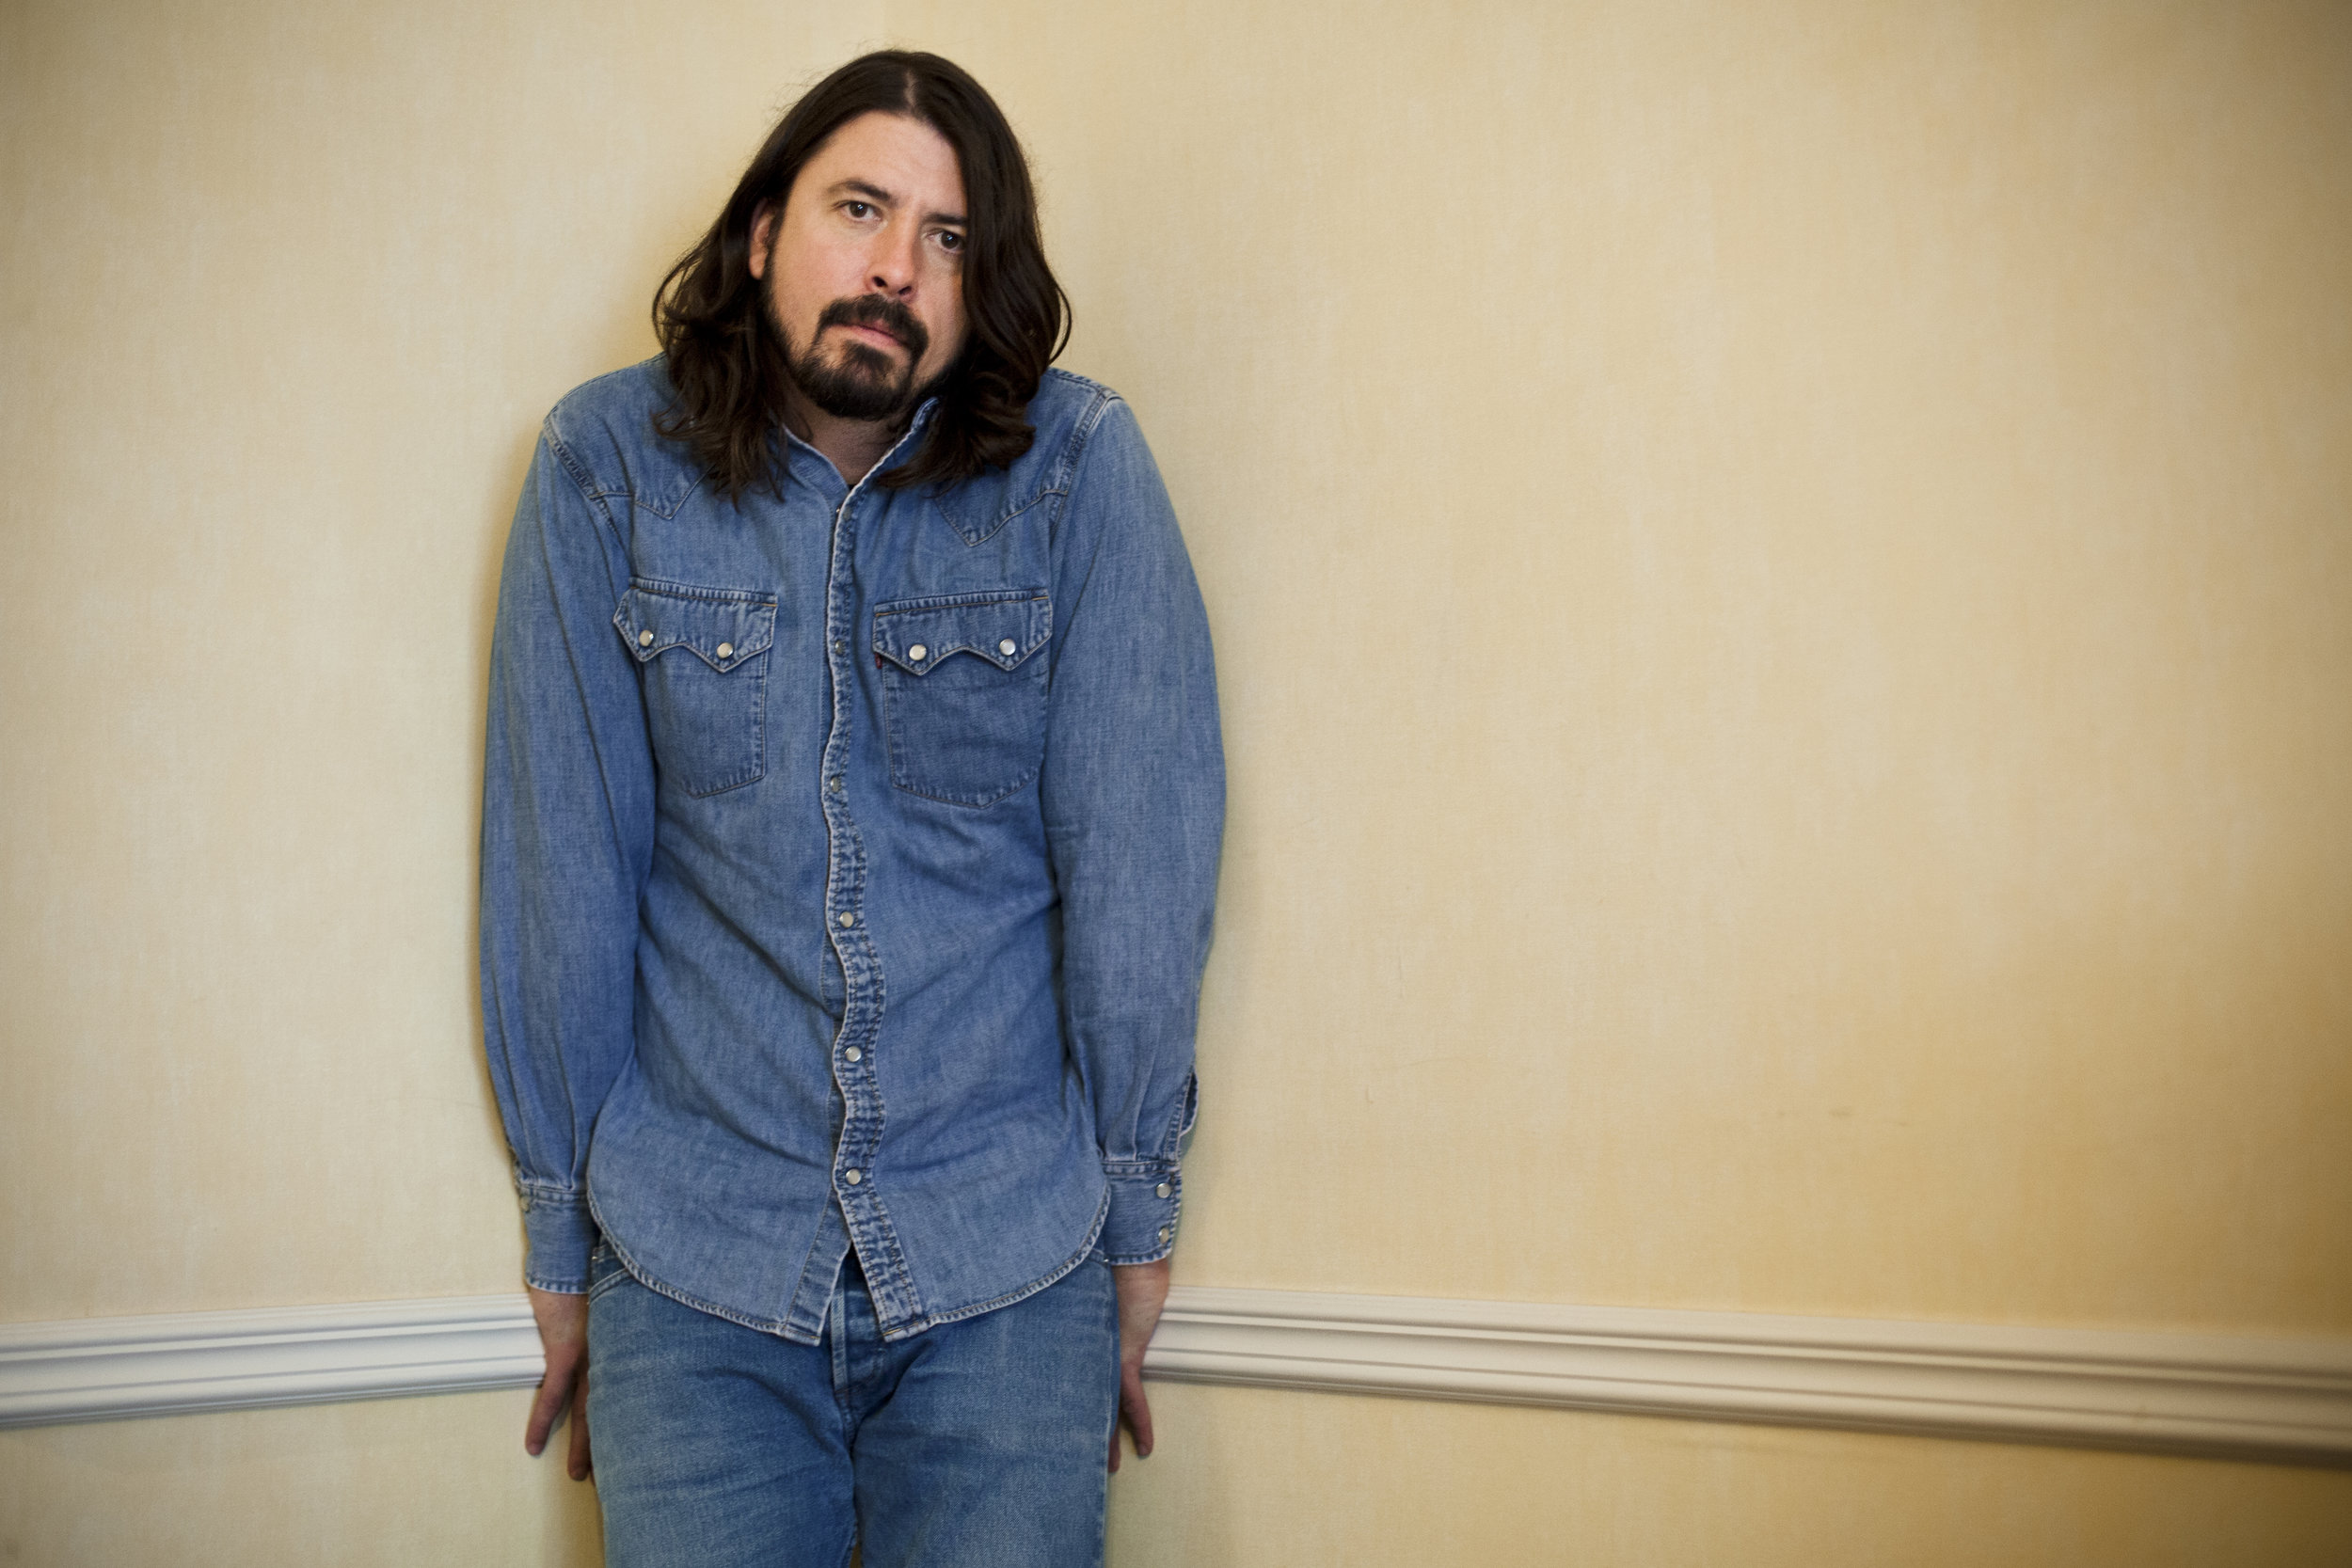 Foo Fighters frontman Dave Grohl poses for a portrait at a room in the Covent Garden Hotel, central London, Tuesday, Nov. 3, 2009. (David Azia for the New York Times)